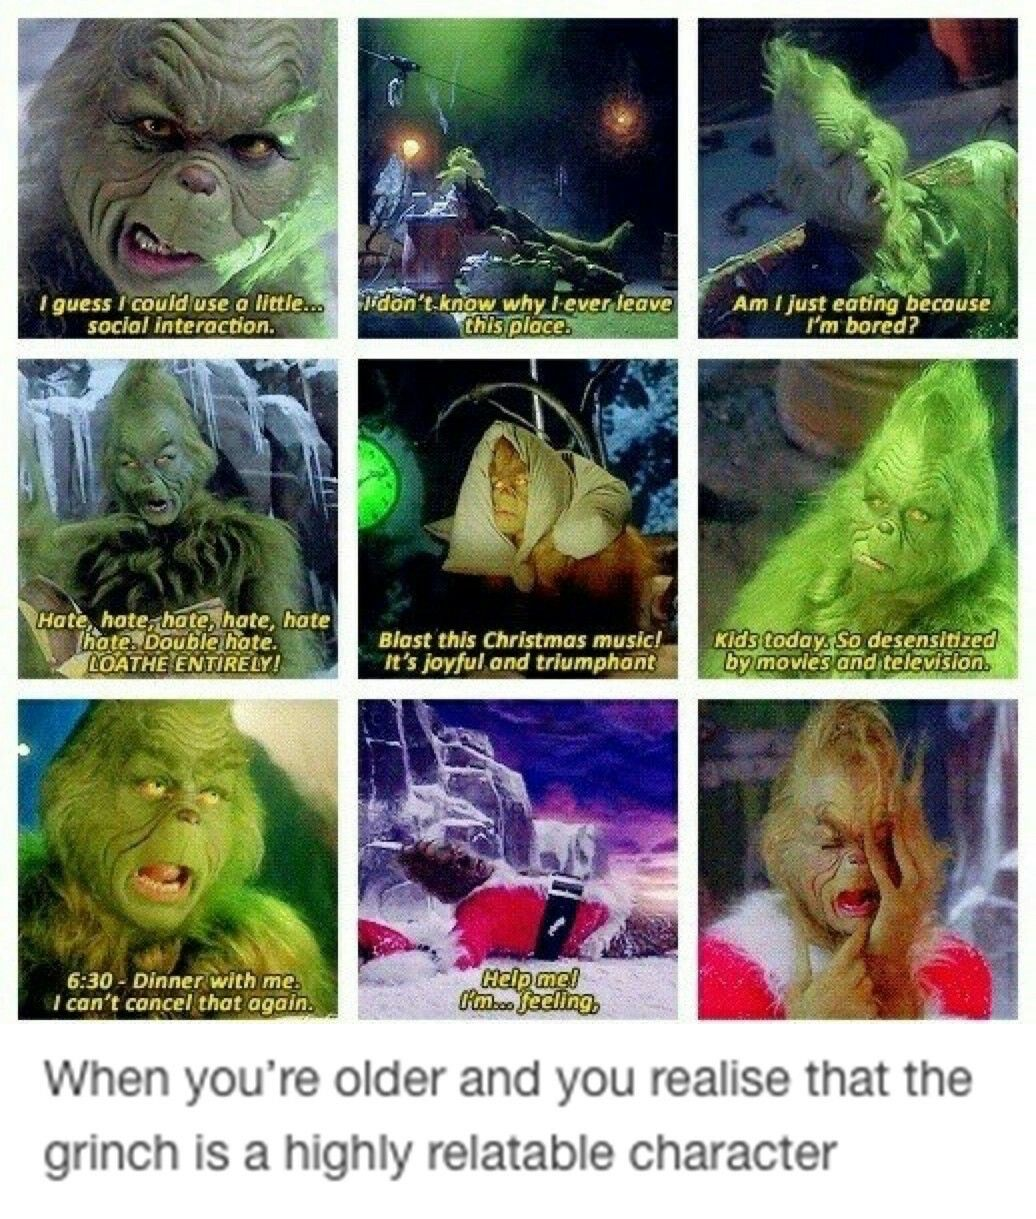 grinch growing up adultlife I can relate so much